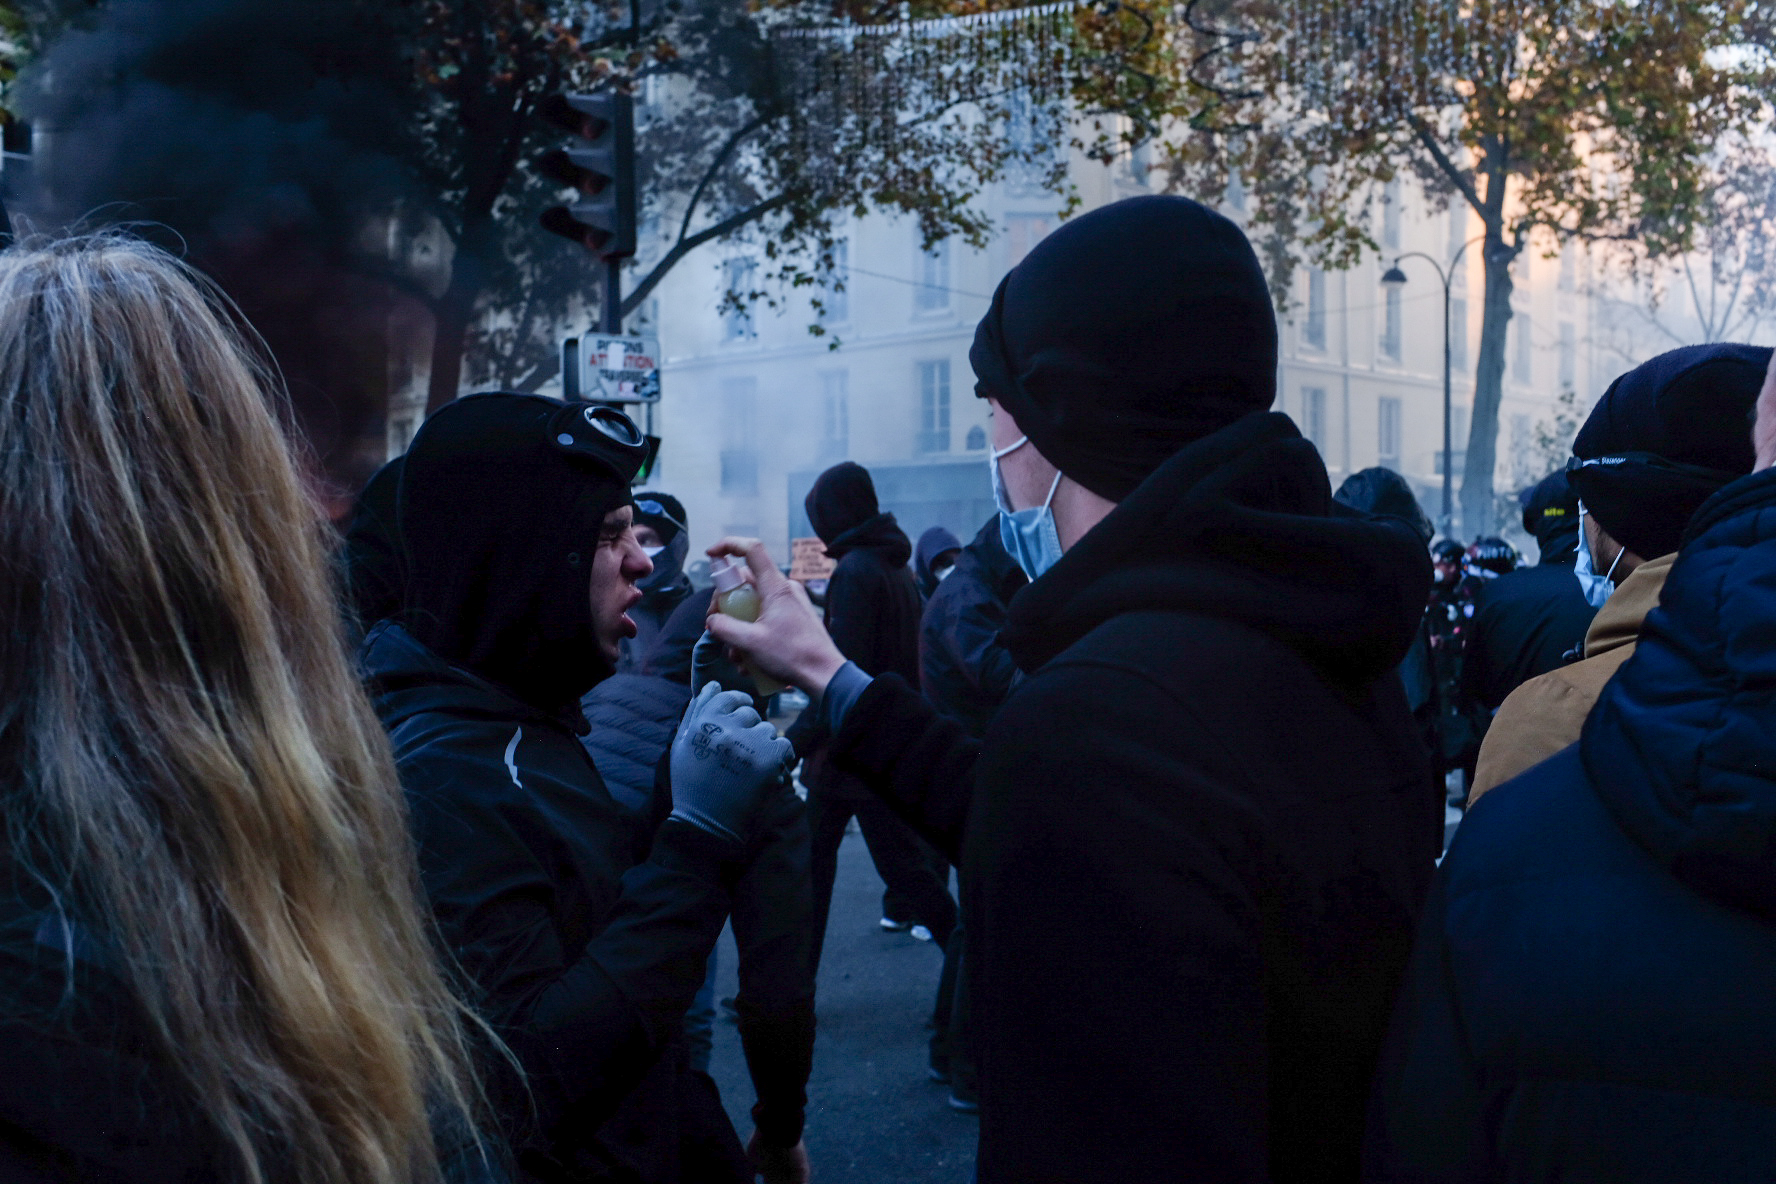 Demonstrator suffers from tear gas at the November 28 protest. Image Credit: Amy Thorpe